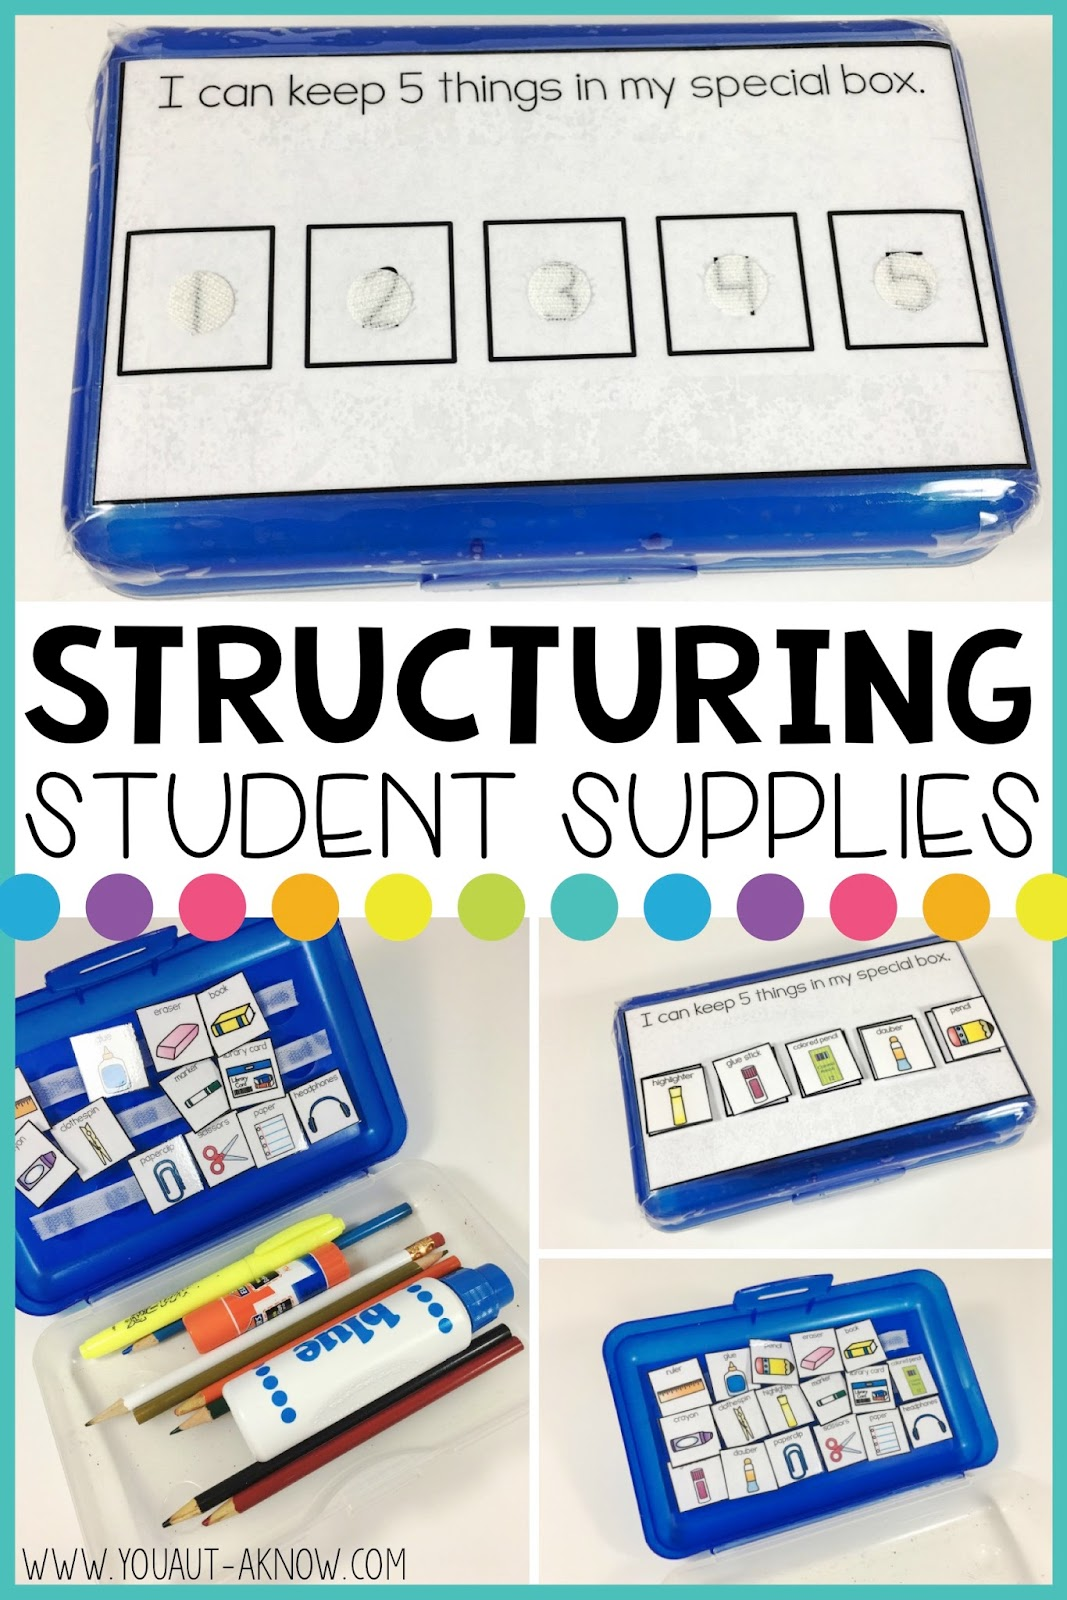 Do you have students who struggle to organize their classroom supplies? Even their pencil box ends up a black hole of supplies? Check out this simple way to help students visually organize their classroom supplies.